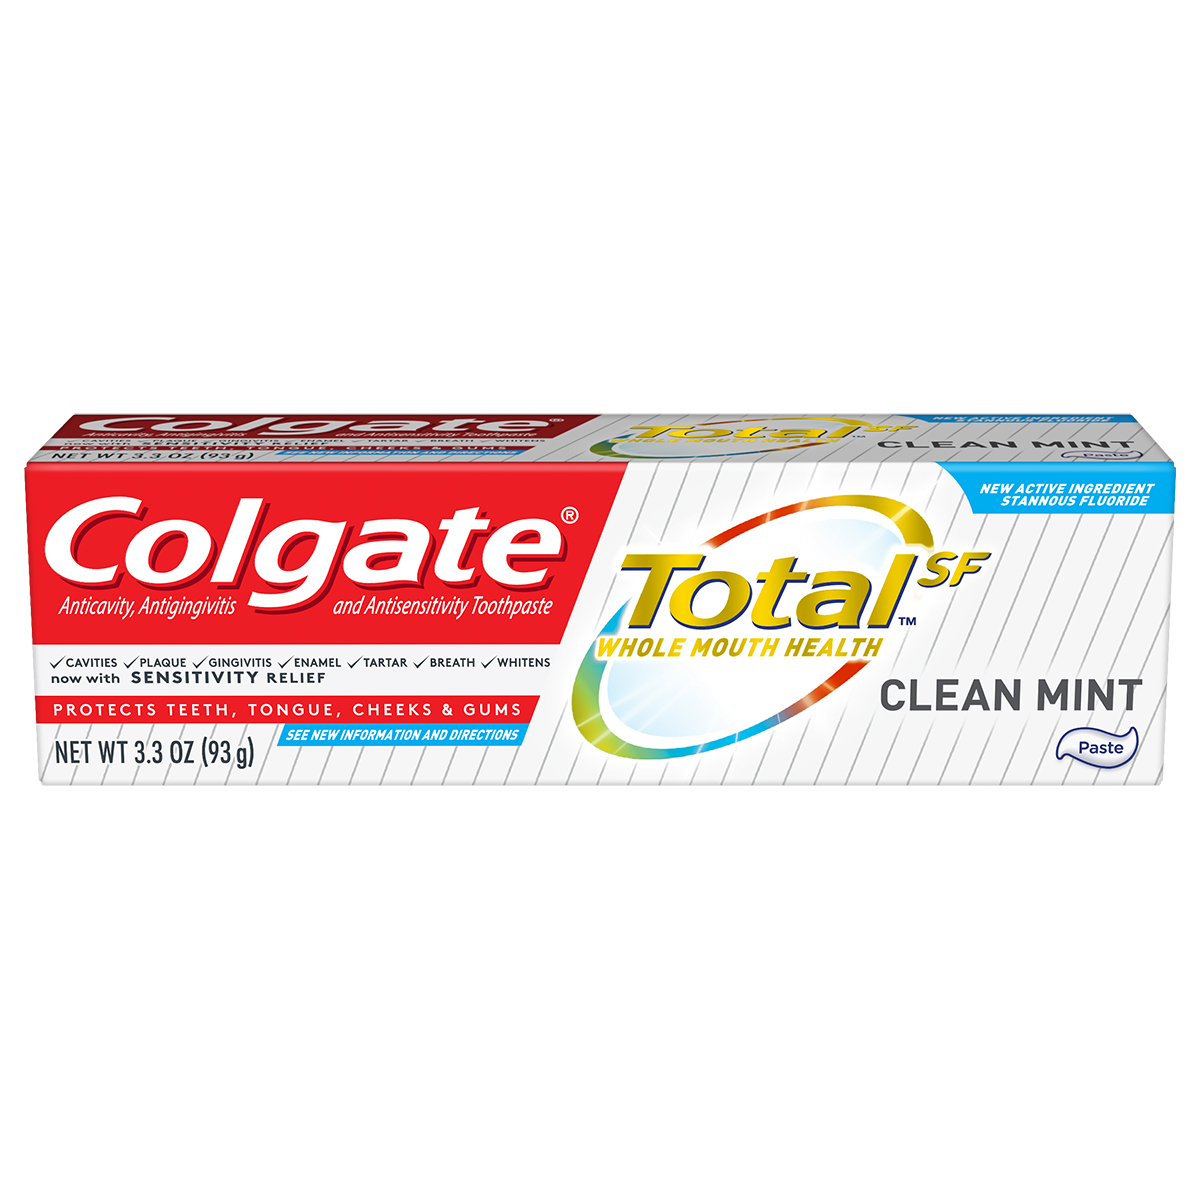 Colgate Totalˢᶠ Clean Mint Toothpaste, 3.3 oz